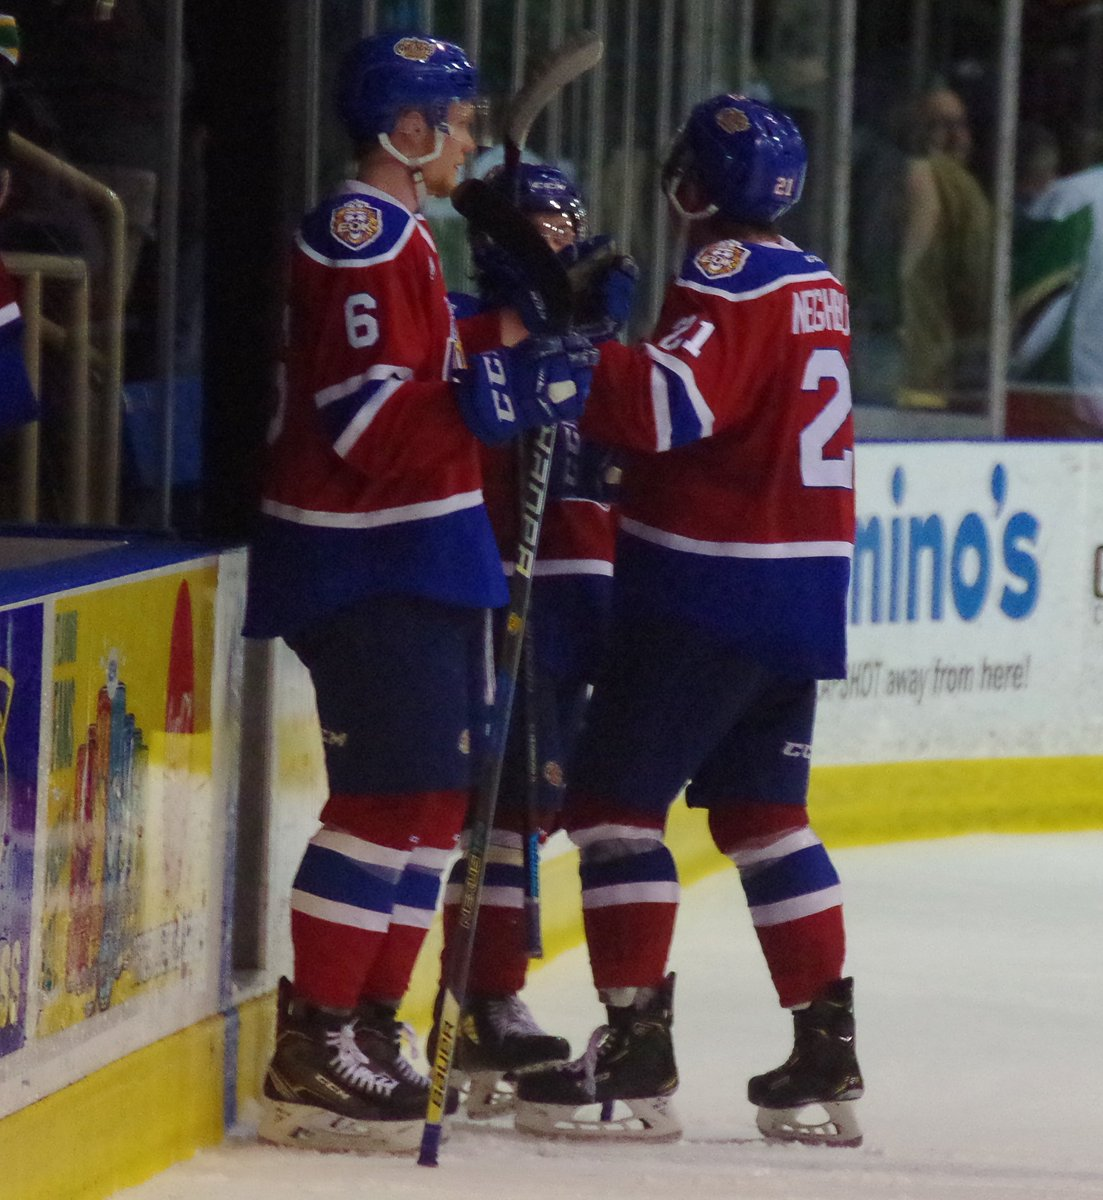 Make the final: #Edmonton #OilKings 4, #PrinceAlbert #Raiders 3. Oil Kings hold 34-29 edge in shots on goal. Best-of-seven #WHL Eastern Conference Championship series tied 1-1. #PAvsEDM.